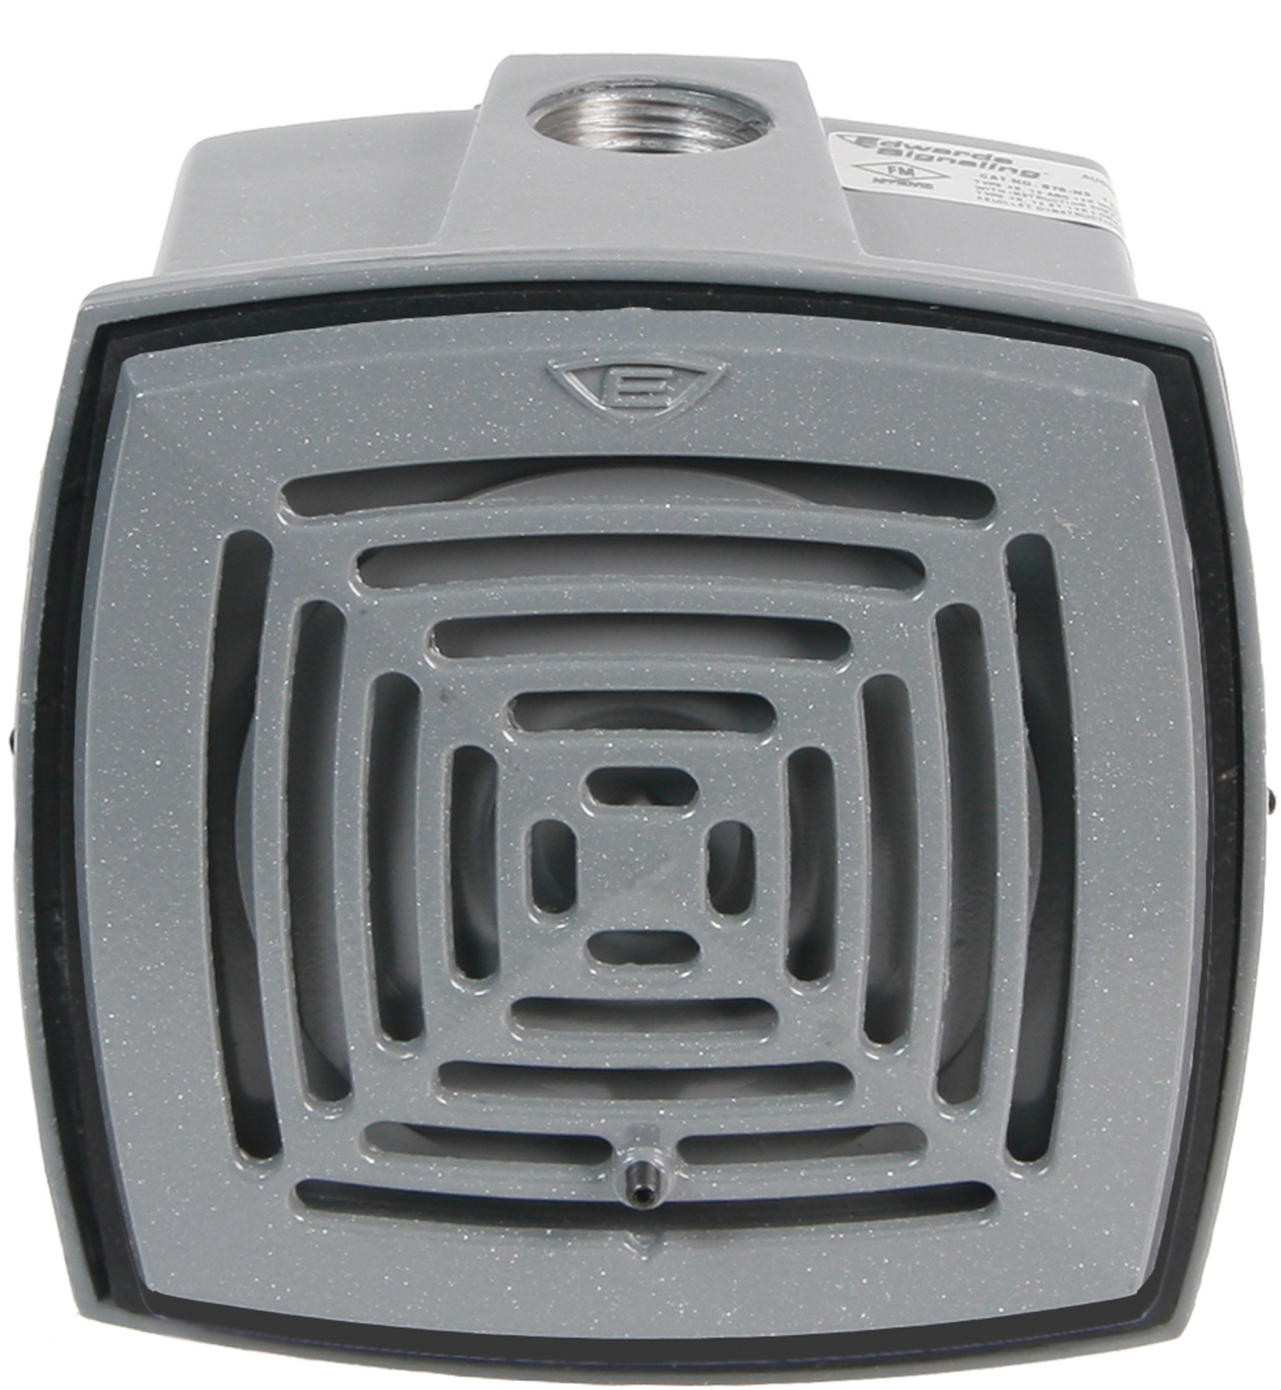 EDW876-N5 LOW-CURRENT, HIGH DECIBEL, AC VIBRATING HORN FOR HEAVY-DUTY USE AND IS UL LISTED TO NEMA 4X ENCLOSURE REQUIREMENTS. THE DIE-CAST WEATHERPROOF BOX HAS A DURABLE, CORROSION RESISTANT, ELECTROSTATIC HEAT FLOWED POWDER EPOXY GRAY FINISH. MAY BE USED FOR INDOOR APPLICATIONS., EDWARDS